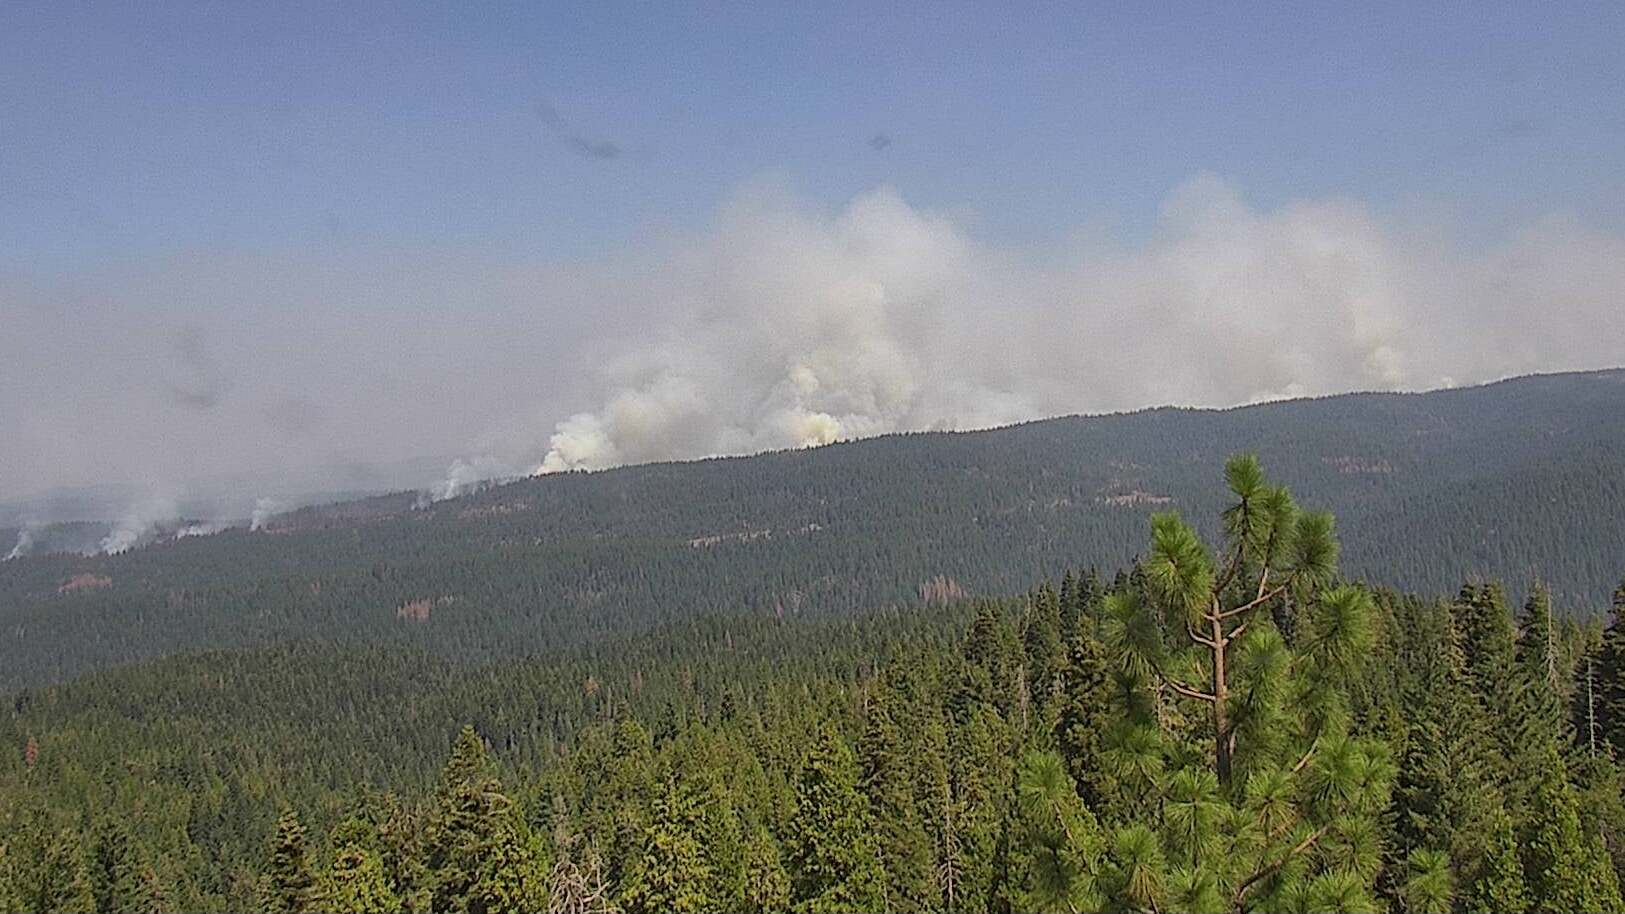 Smoke from the Caldor wildfire in eastern California.